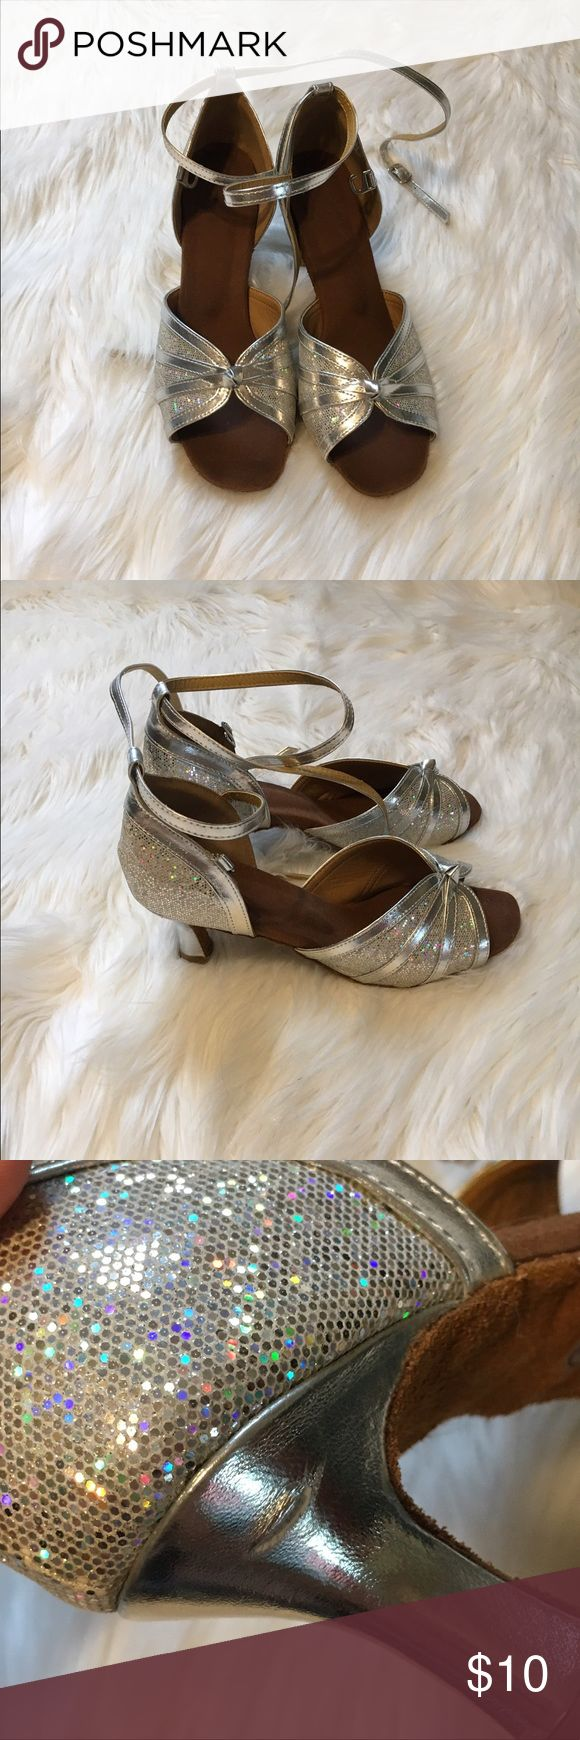 Silver heels These heels were used whil I was in a show choir group. They are very comfy, but worn. There's a scuff mark as pictures. It is a fake clasp which is shown I the pictures as well. Shoes Heels